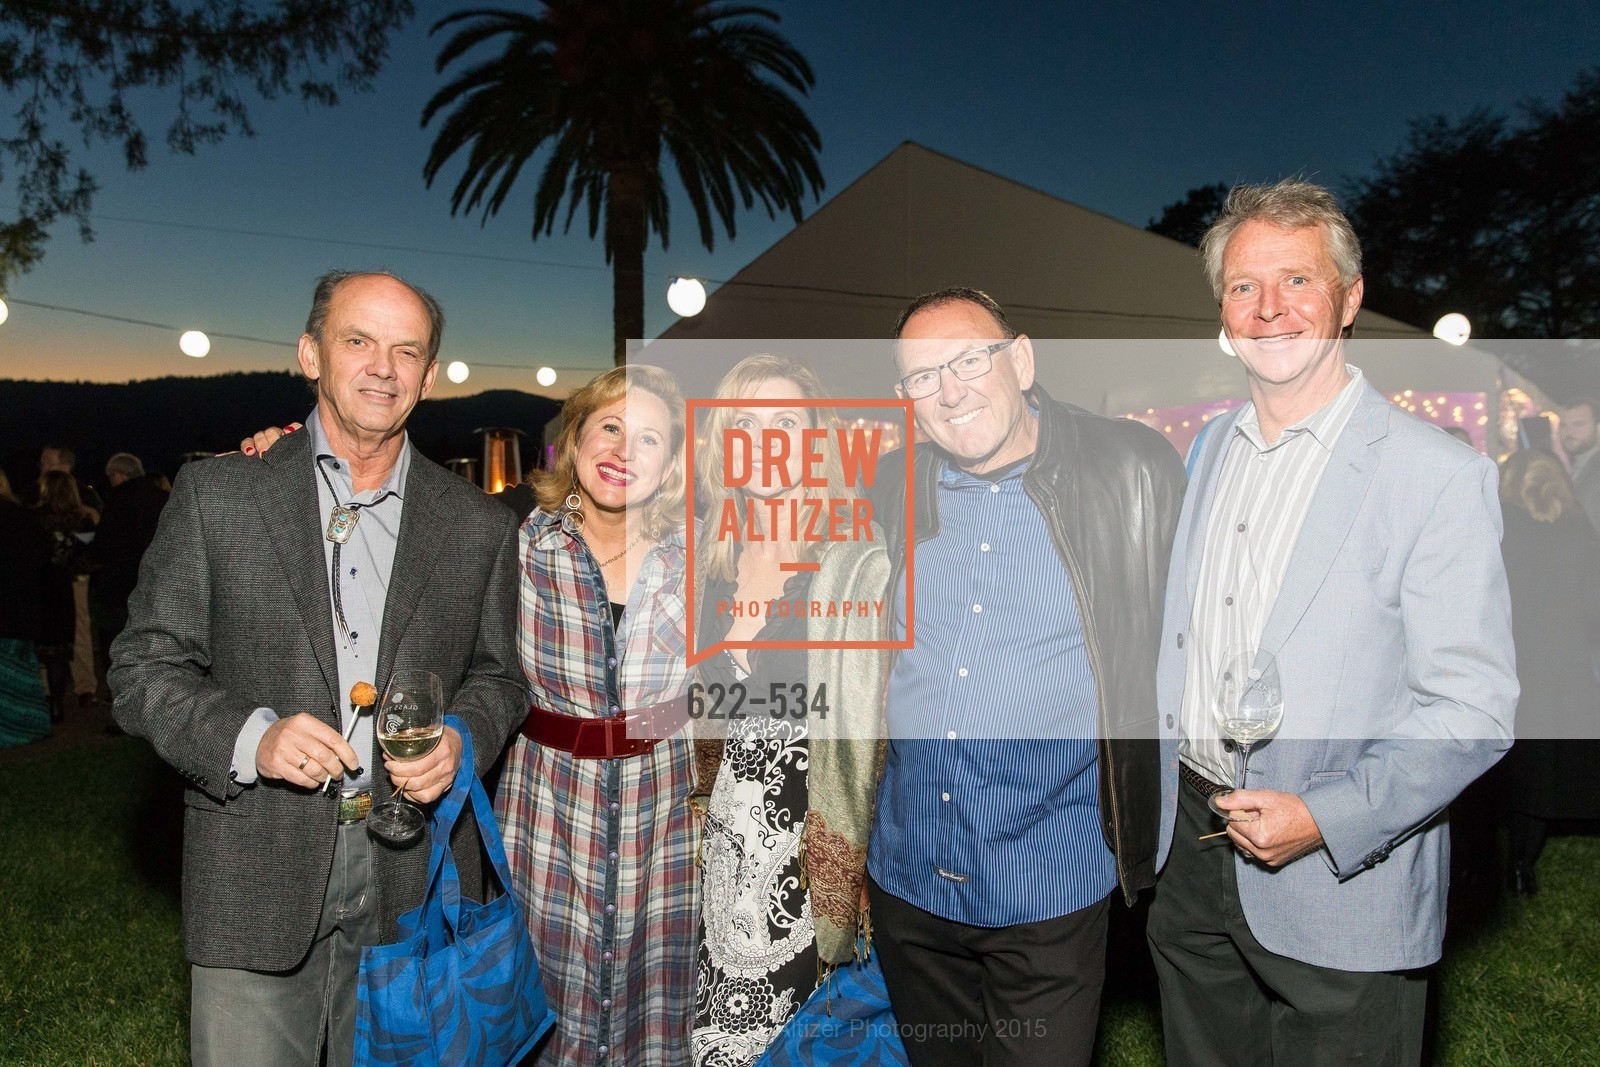 Jon Gates, Maria Cunningham, Taya Poitras, Mark Poitras, John Cunningham, Perfecting Pairings - Food, Wine and Stories, Chateau St Jean, Kenwood, November 14th, 2015,Drew Altizer, Drew Altizer Photography, full-service event agency, private events, San Francisco photographer, photographer California